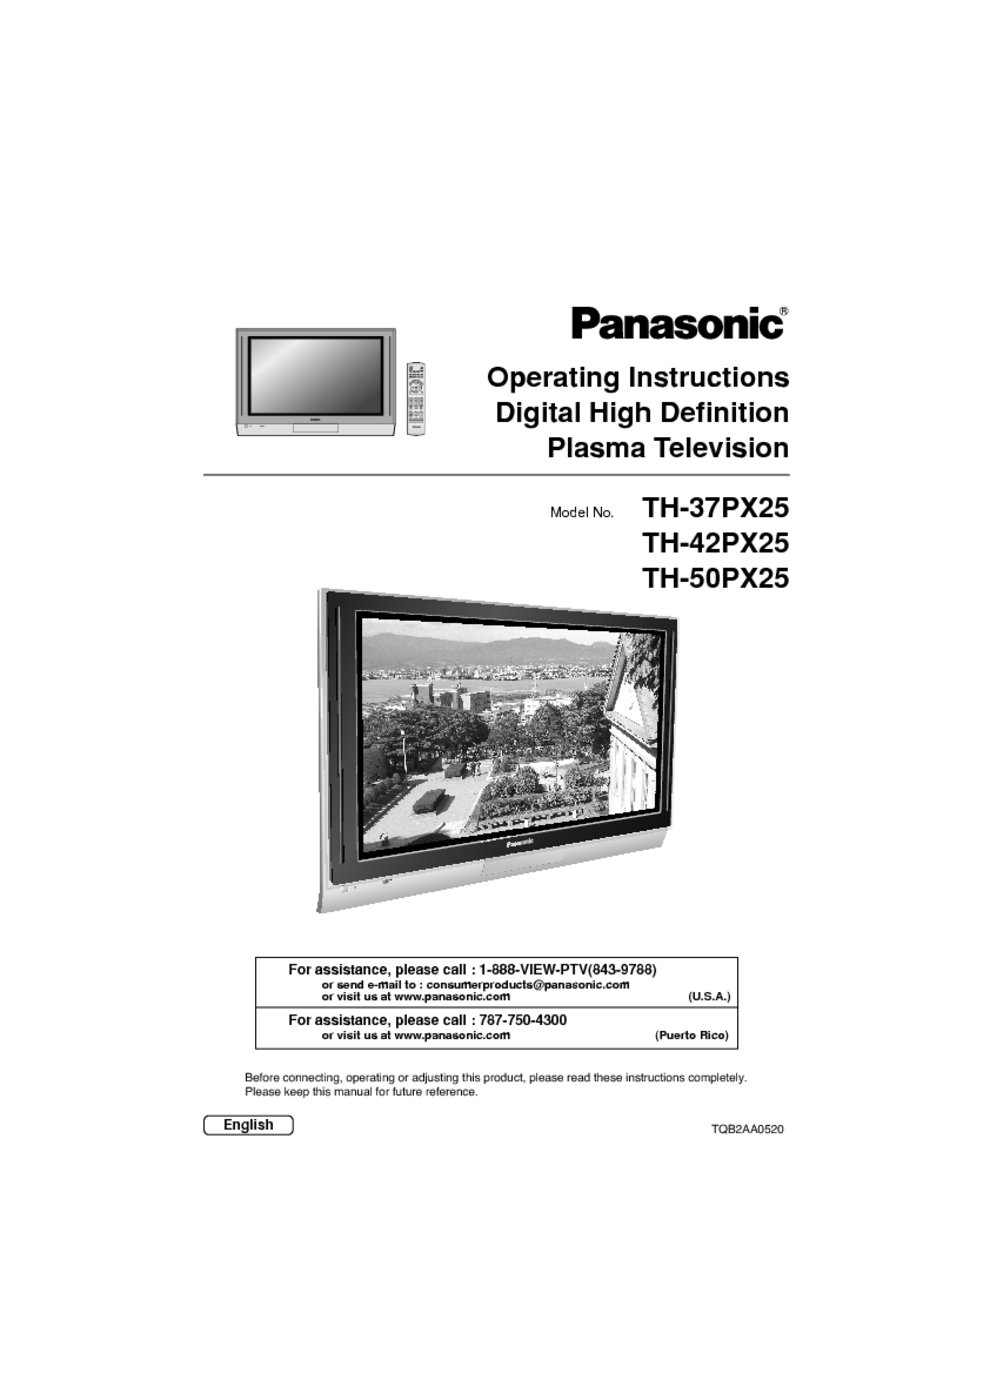 Flat Panel Television Users Guides Page 57 Futuro Intercom Wiring Diagram Th 42px25 Manuals